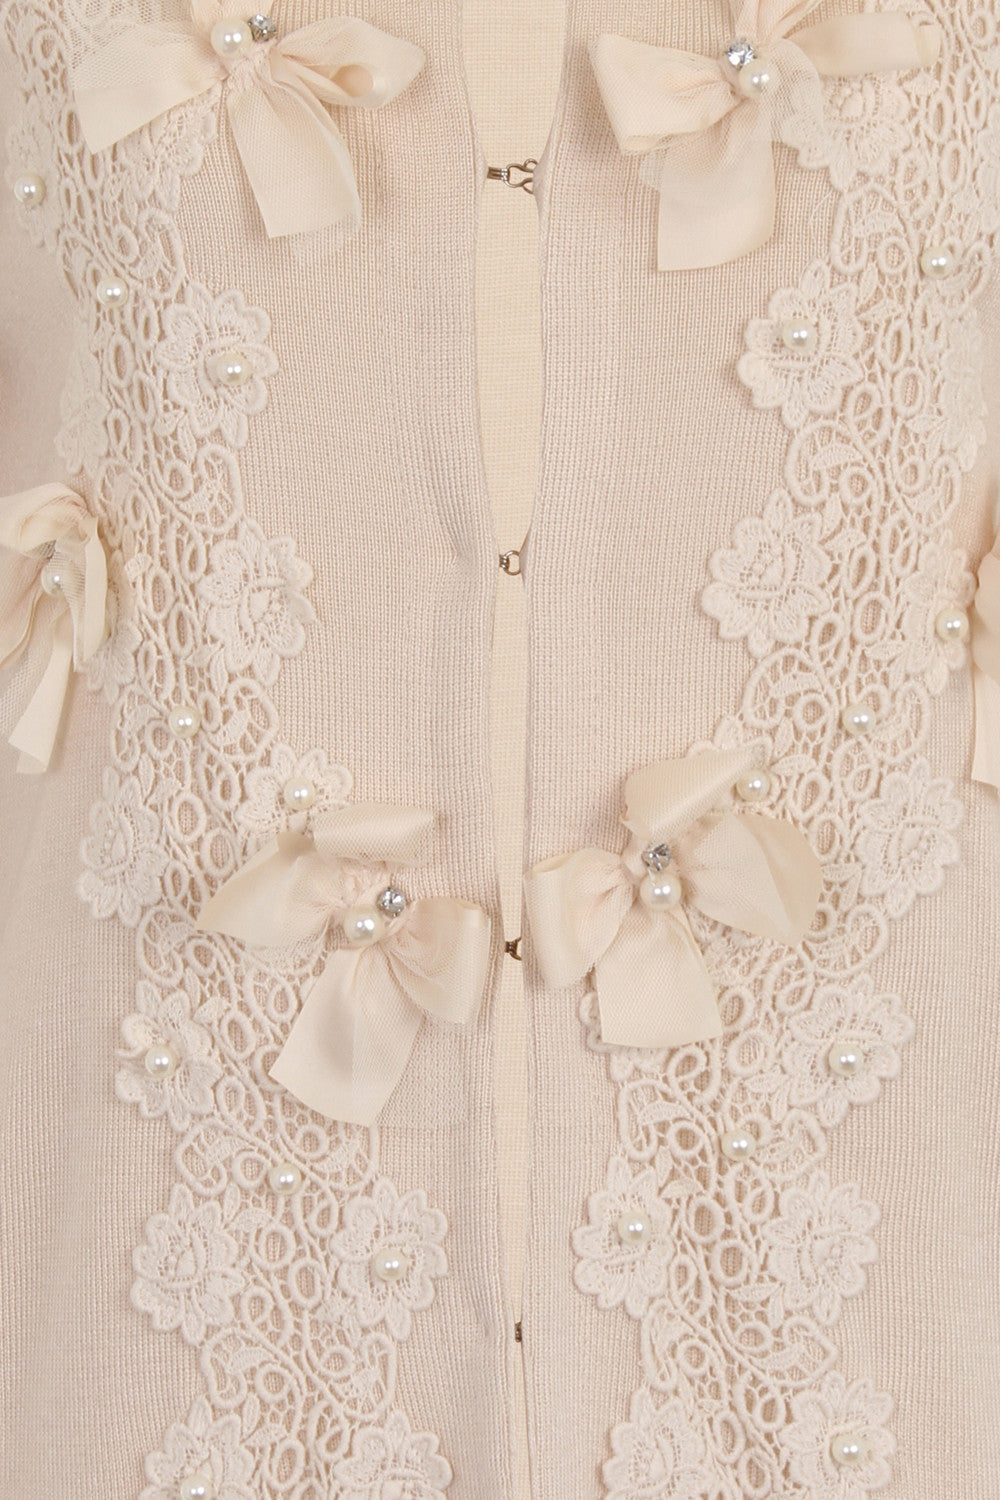 BUTTERFLY LONG CARDIGAN - CREAM - Darccy & Soma London